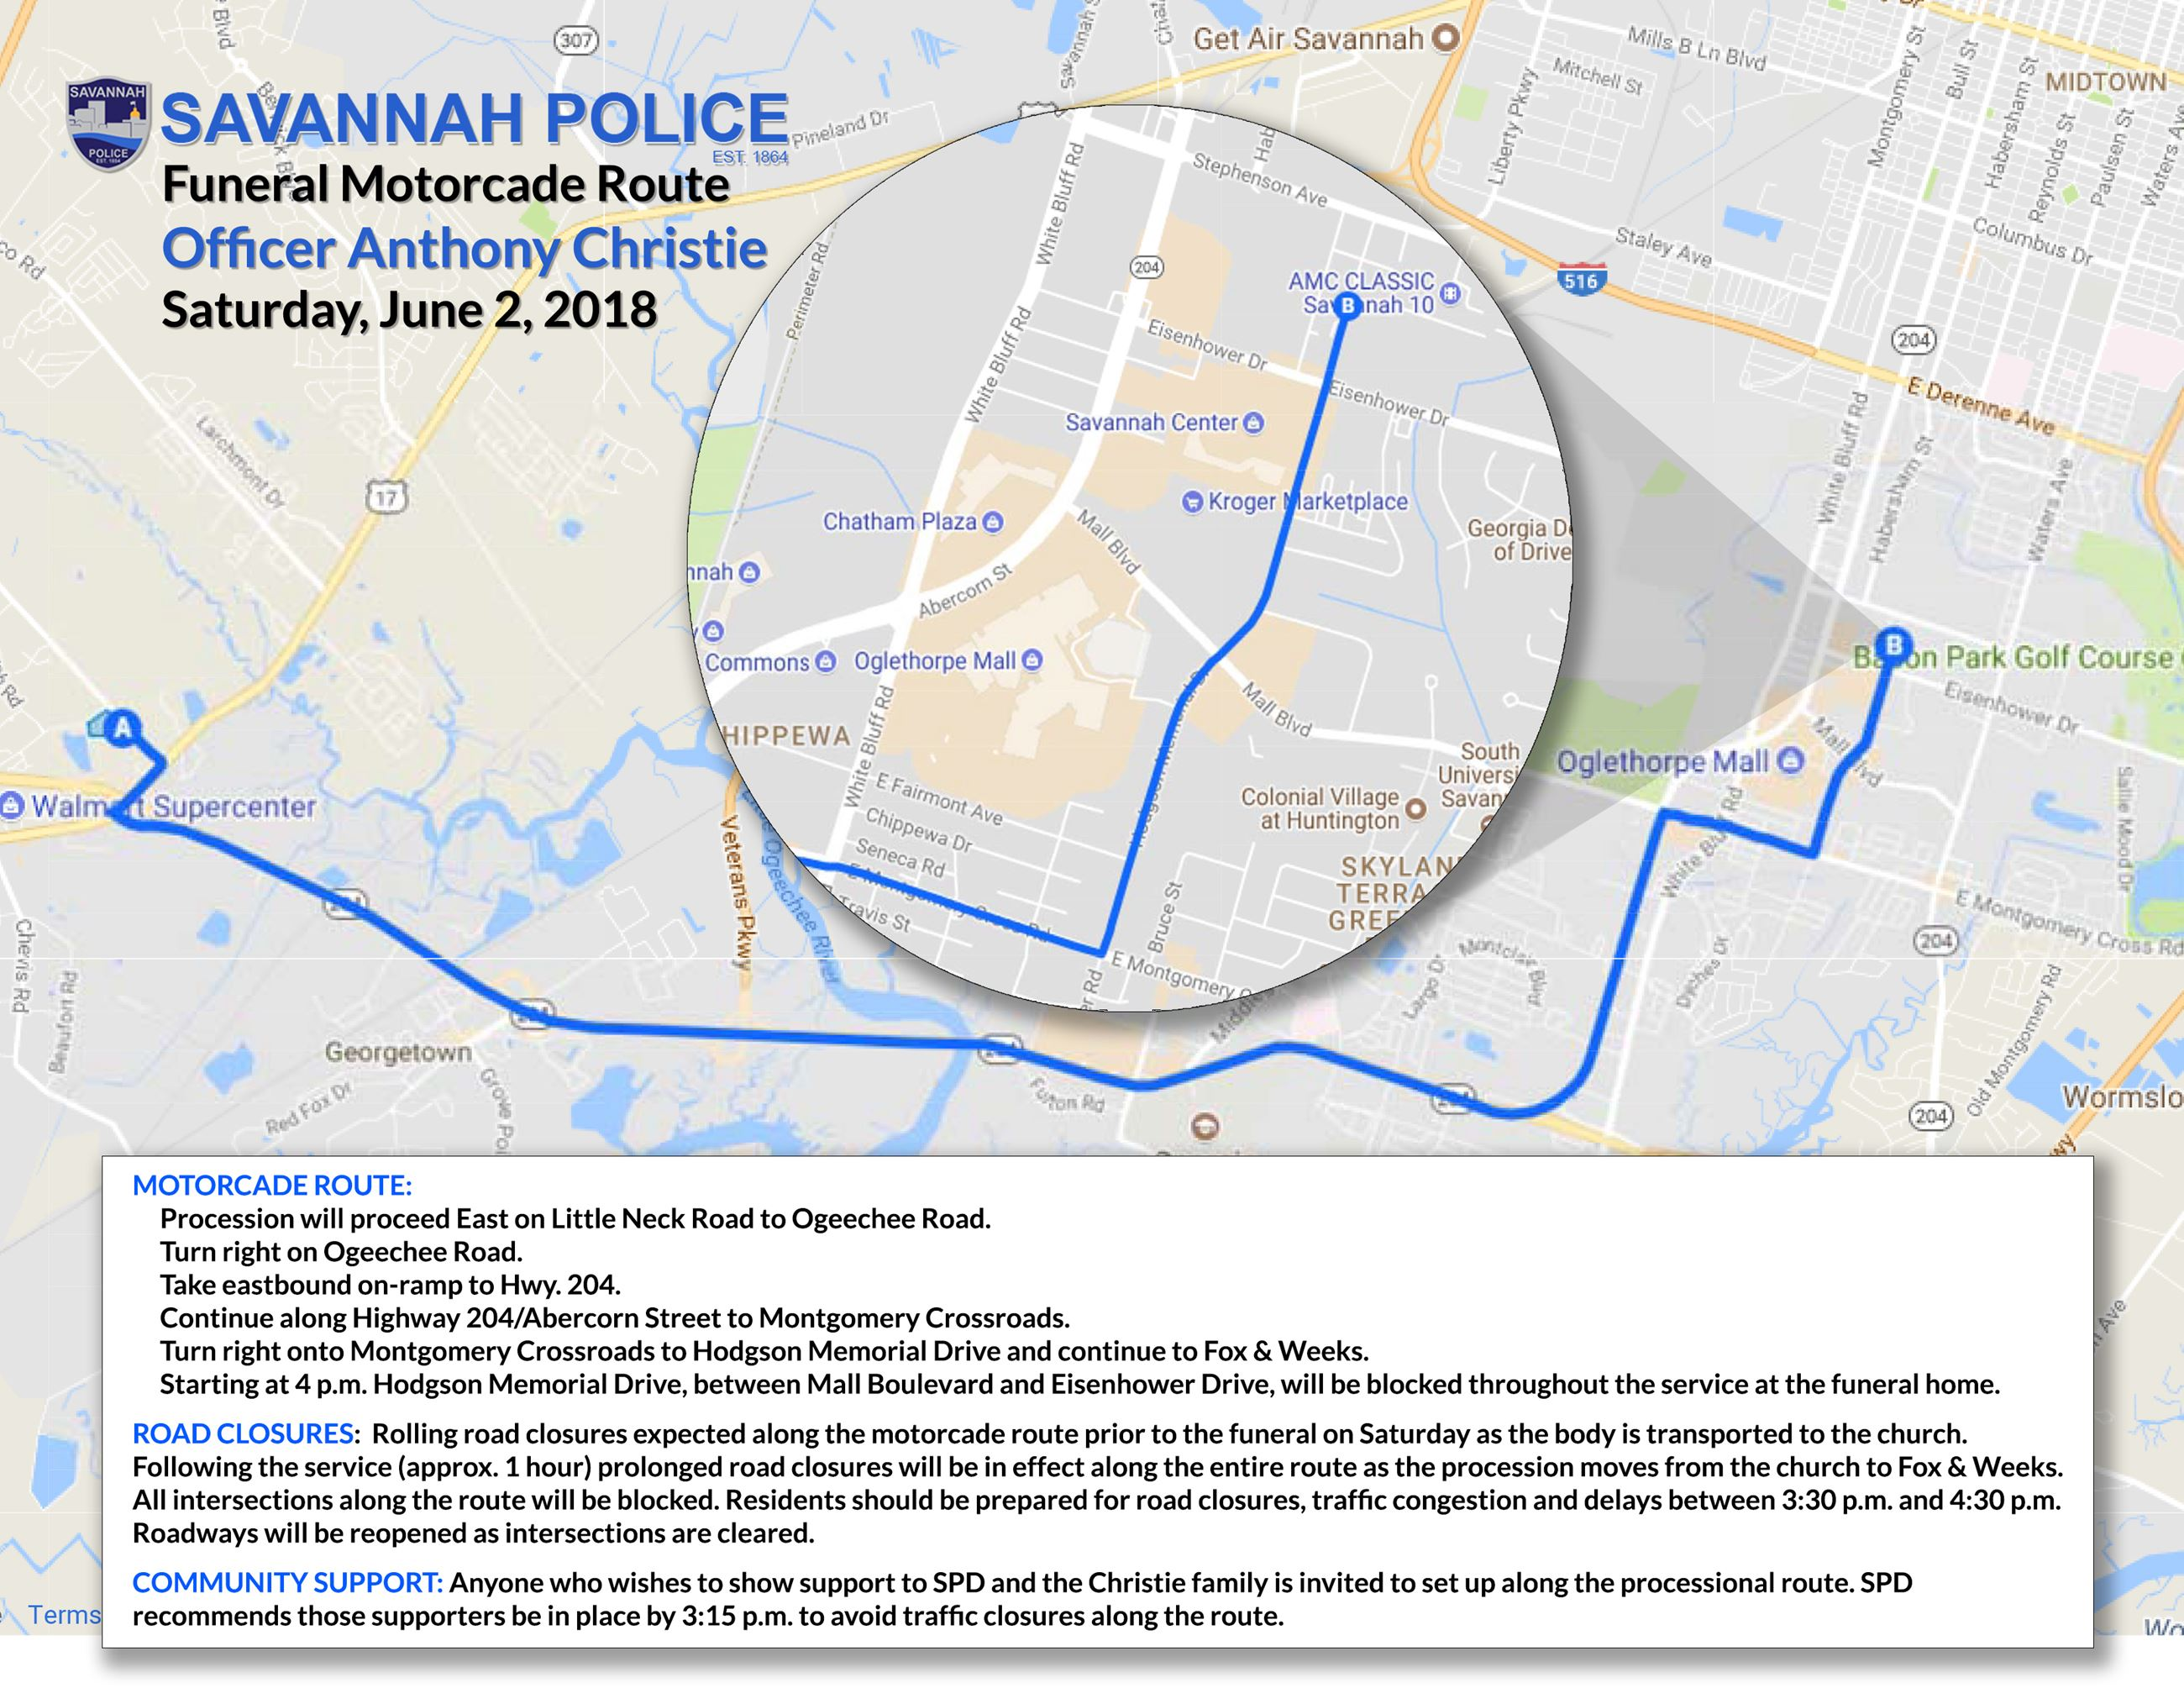 Officer Anthony Christie Funeral Motorcade route map 06022018 2